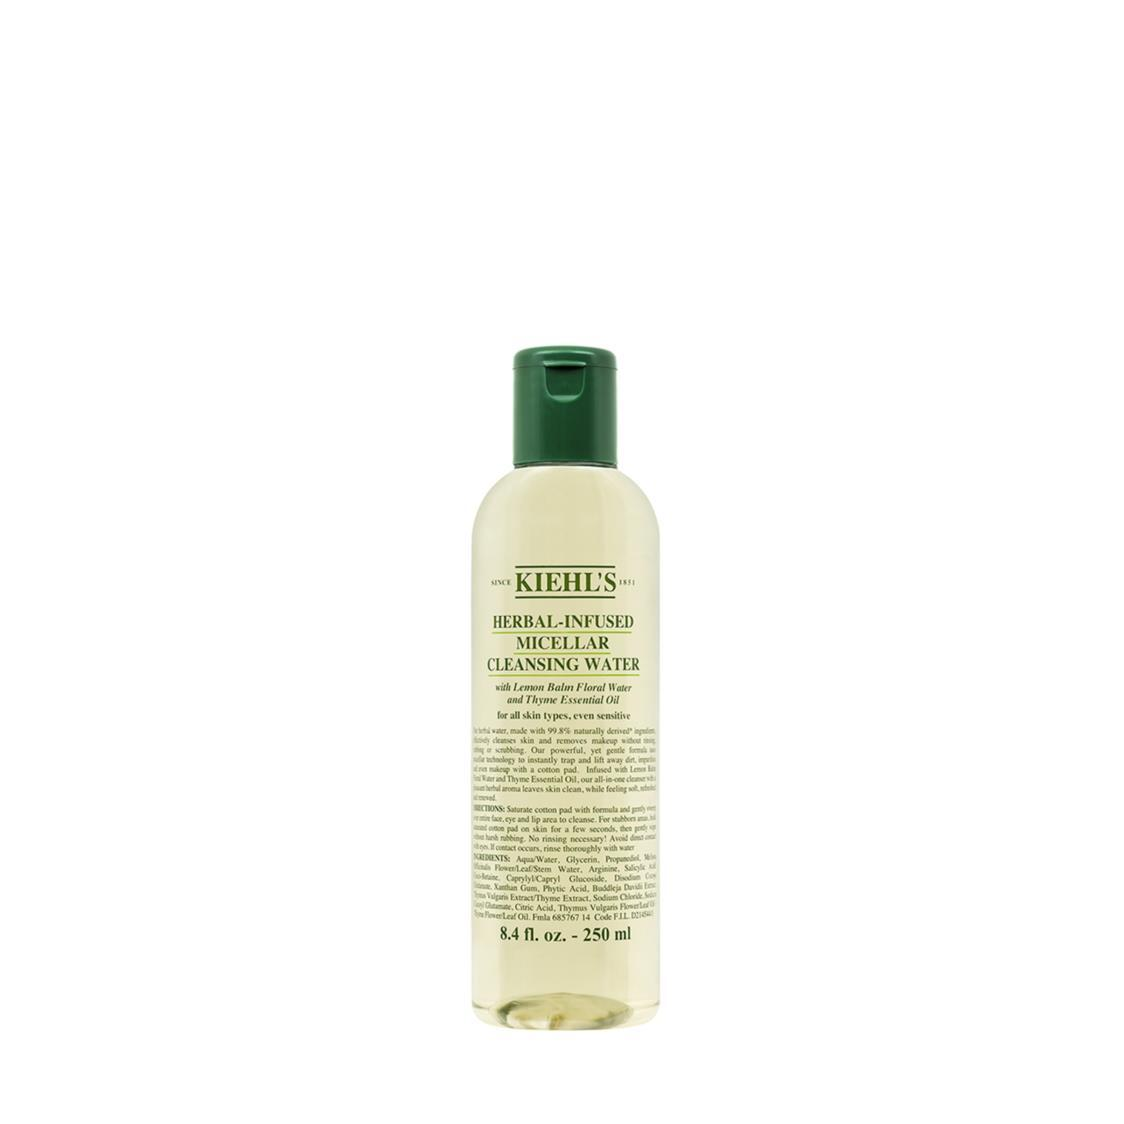 Herbal-Infused Micellar Cleansing Water 250ml